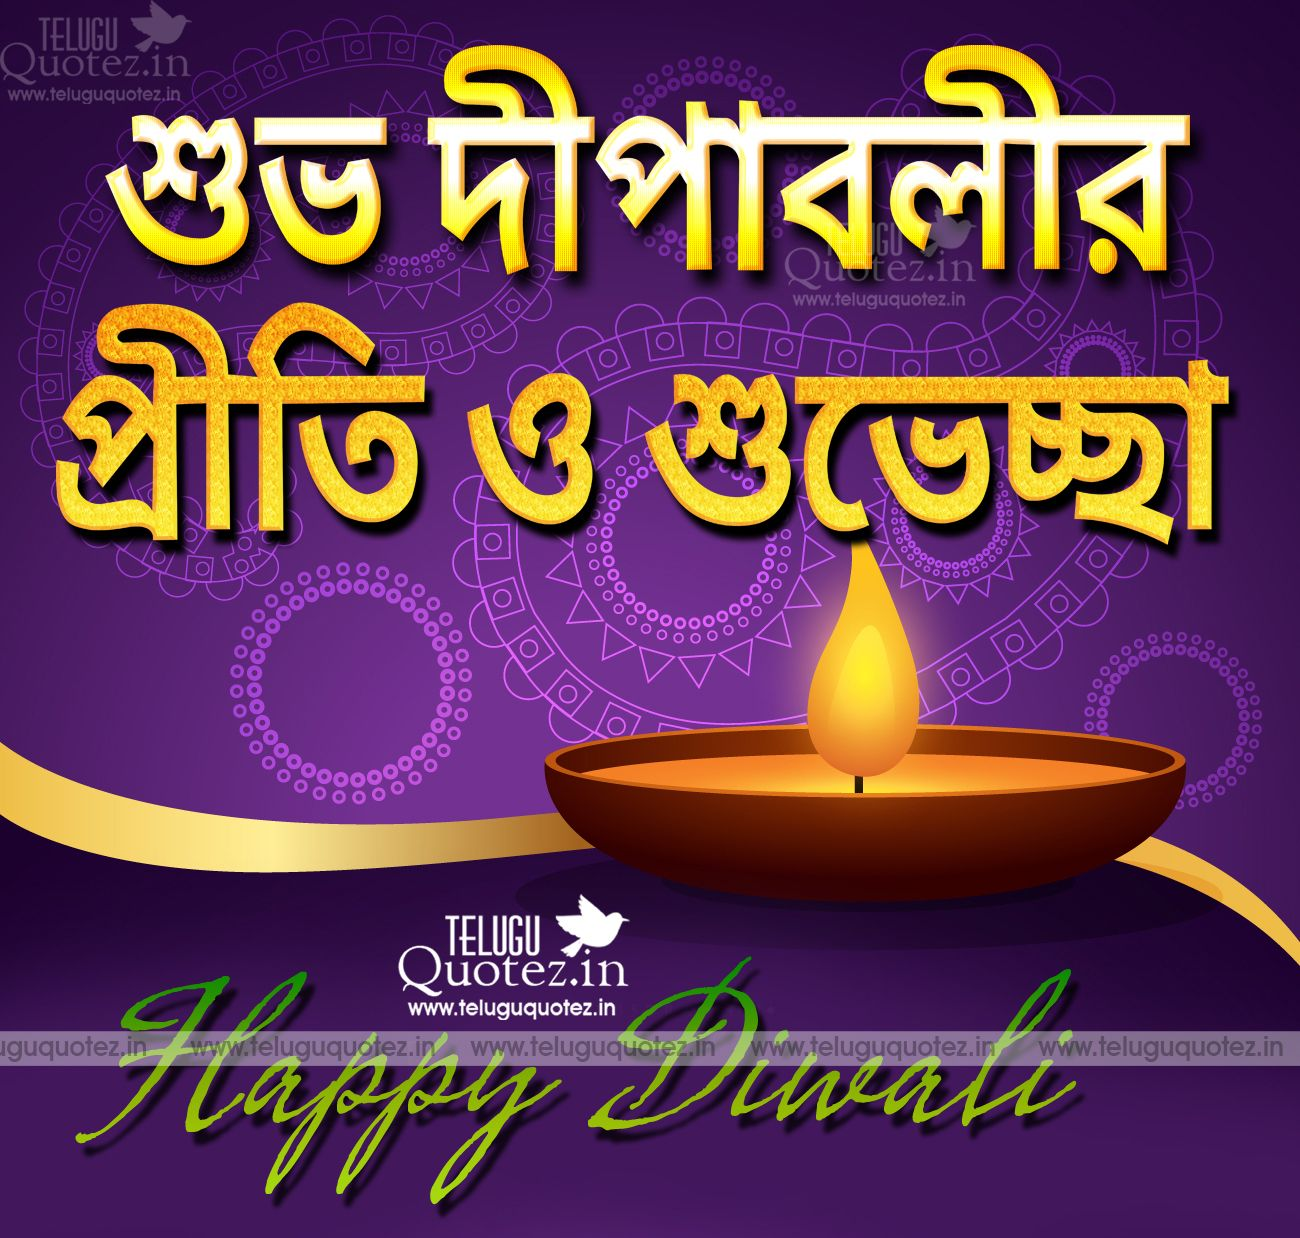 Here is a 2015 deepavali bengali language quotes and messages online here is a 2015 deepavali bengali language quotes and messages online top bangla diwali wishes kristyandbryce Gallery